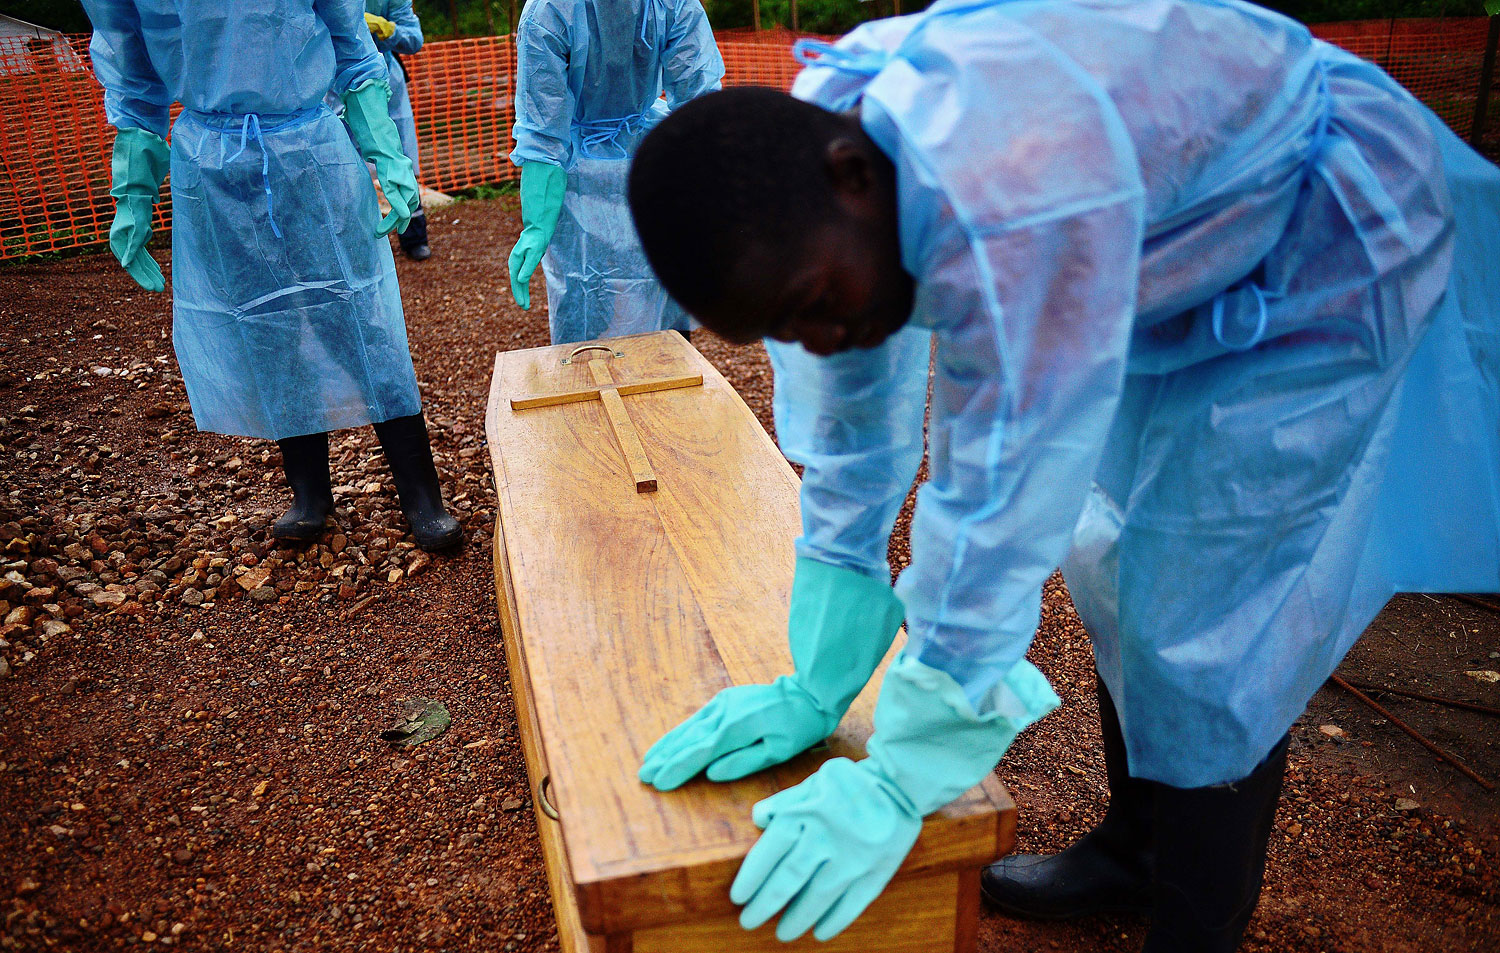 A Sierra Leone government burial team with the coffin of Dr Modupeh Cole, Sierra Leone's second senior physician to die of Ebola, at the MSF facility in Kailahun, Sierra Leone, on Aug. 14, 2014.